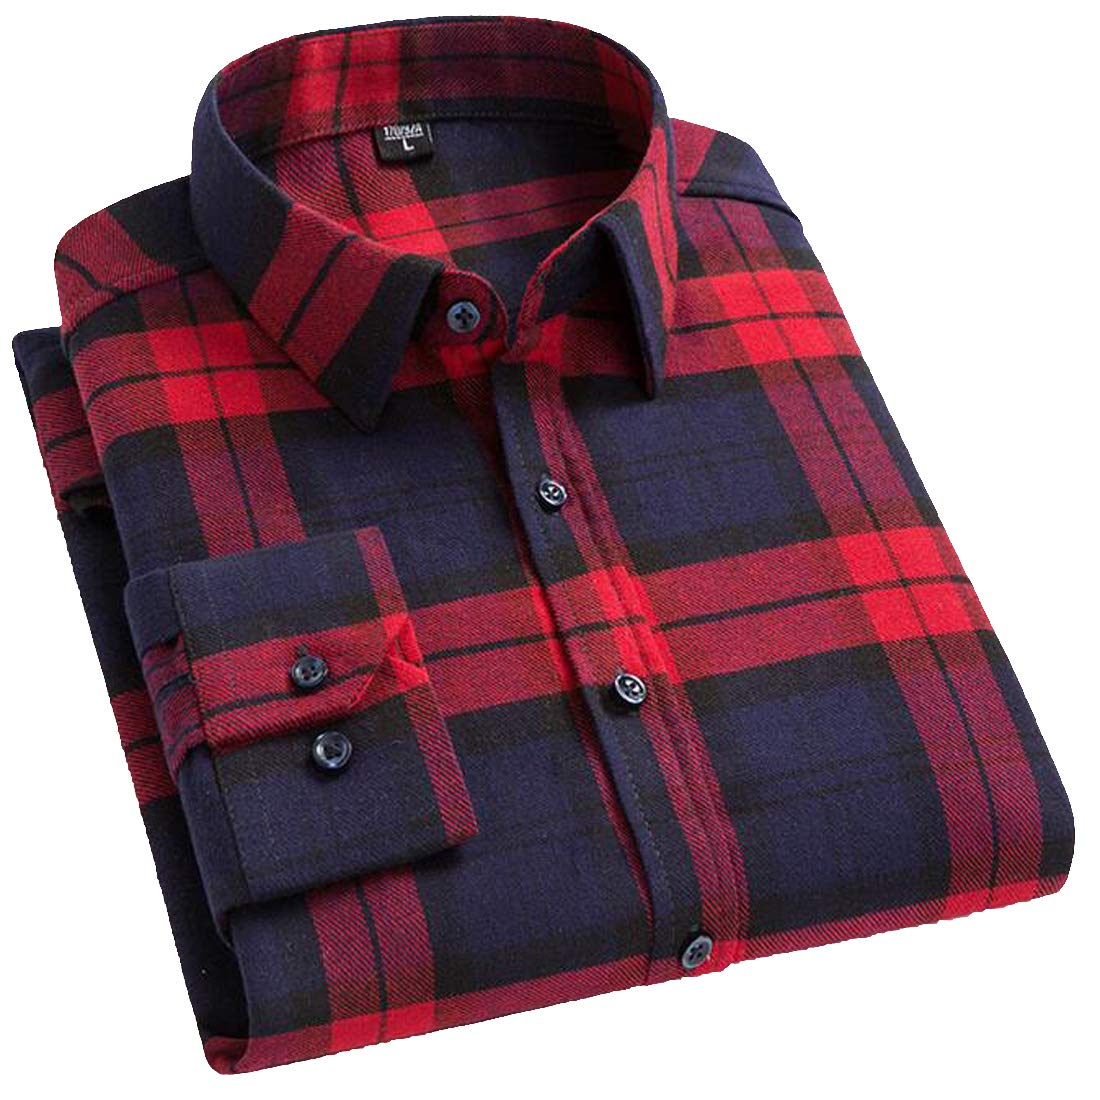 Hajotrawa Mens Casual Buffalo Long Sleeve Button Down Check Cotton Shirts